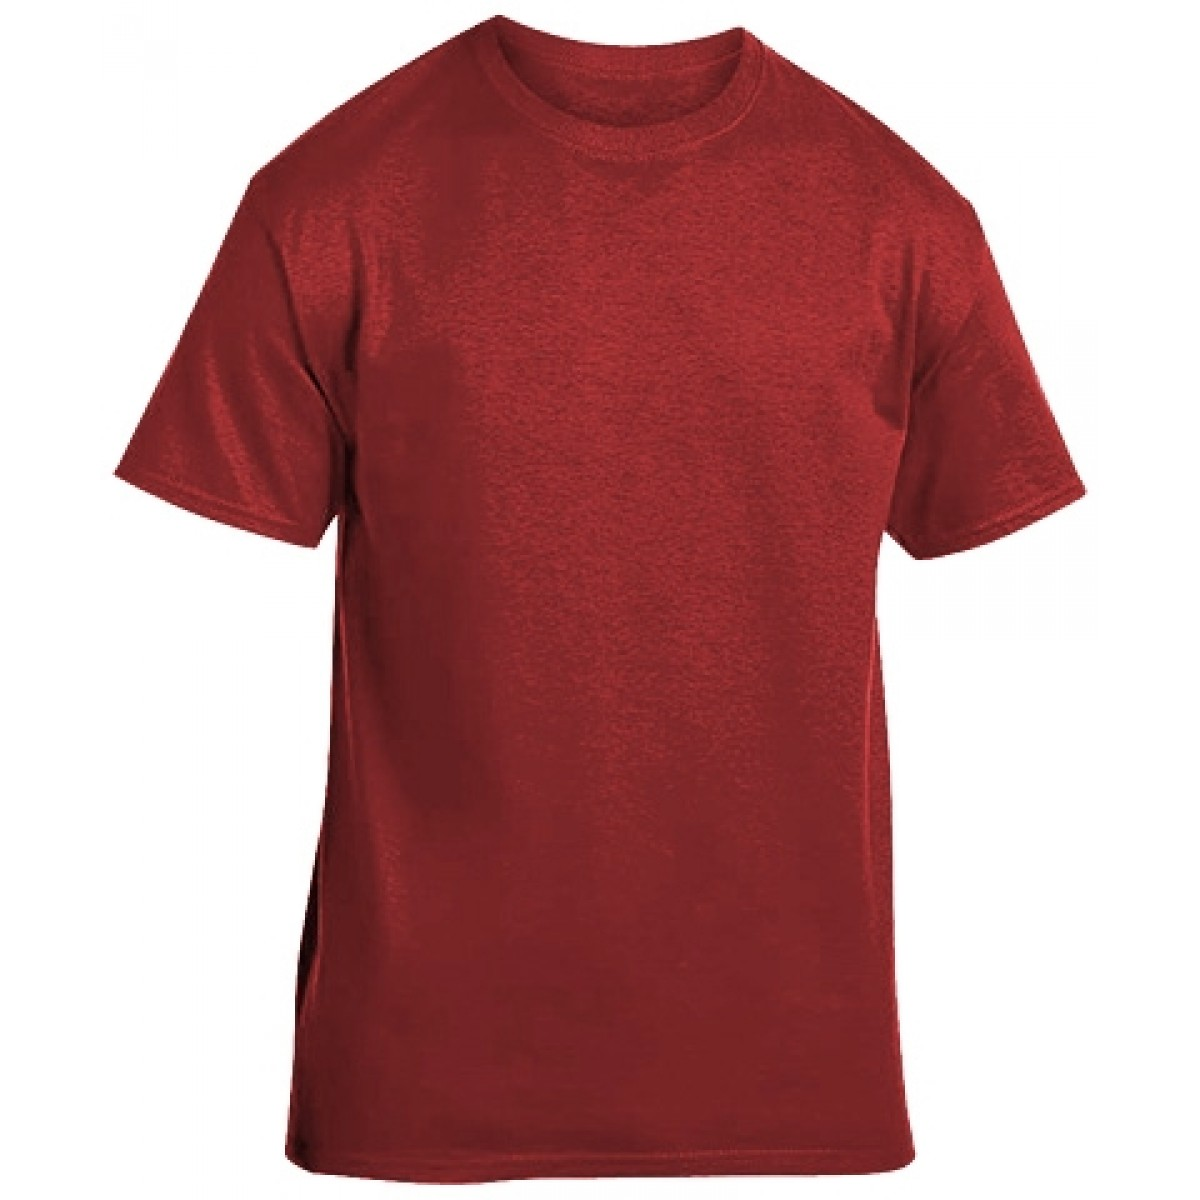 Soft 100% Cotton T-Shirt-Heathered Red-YL